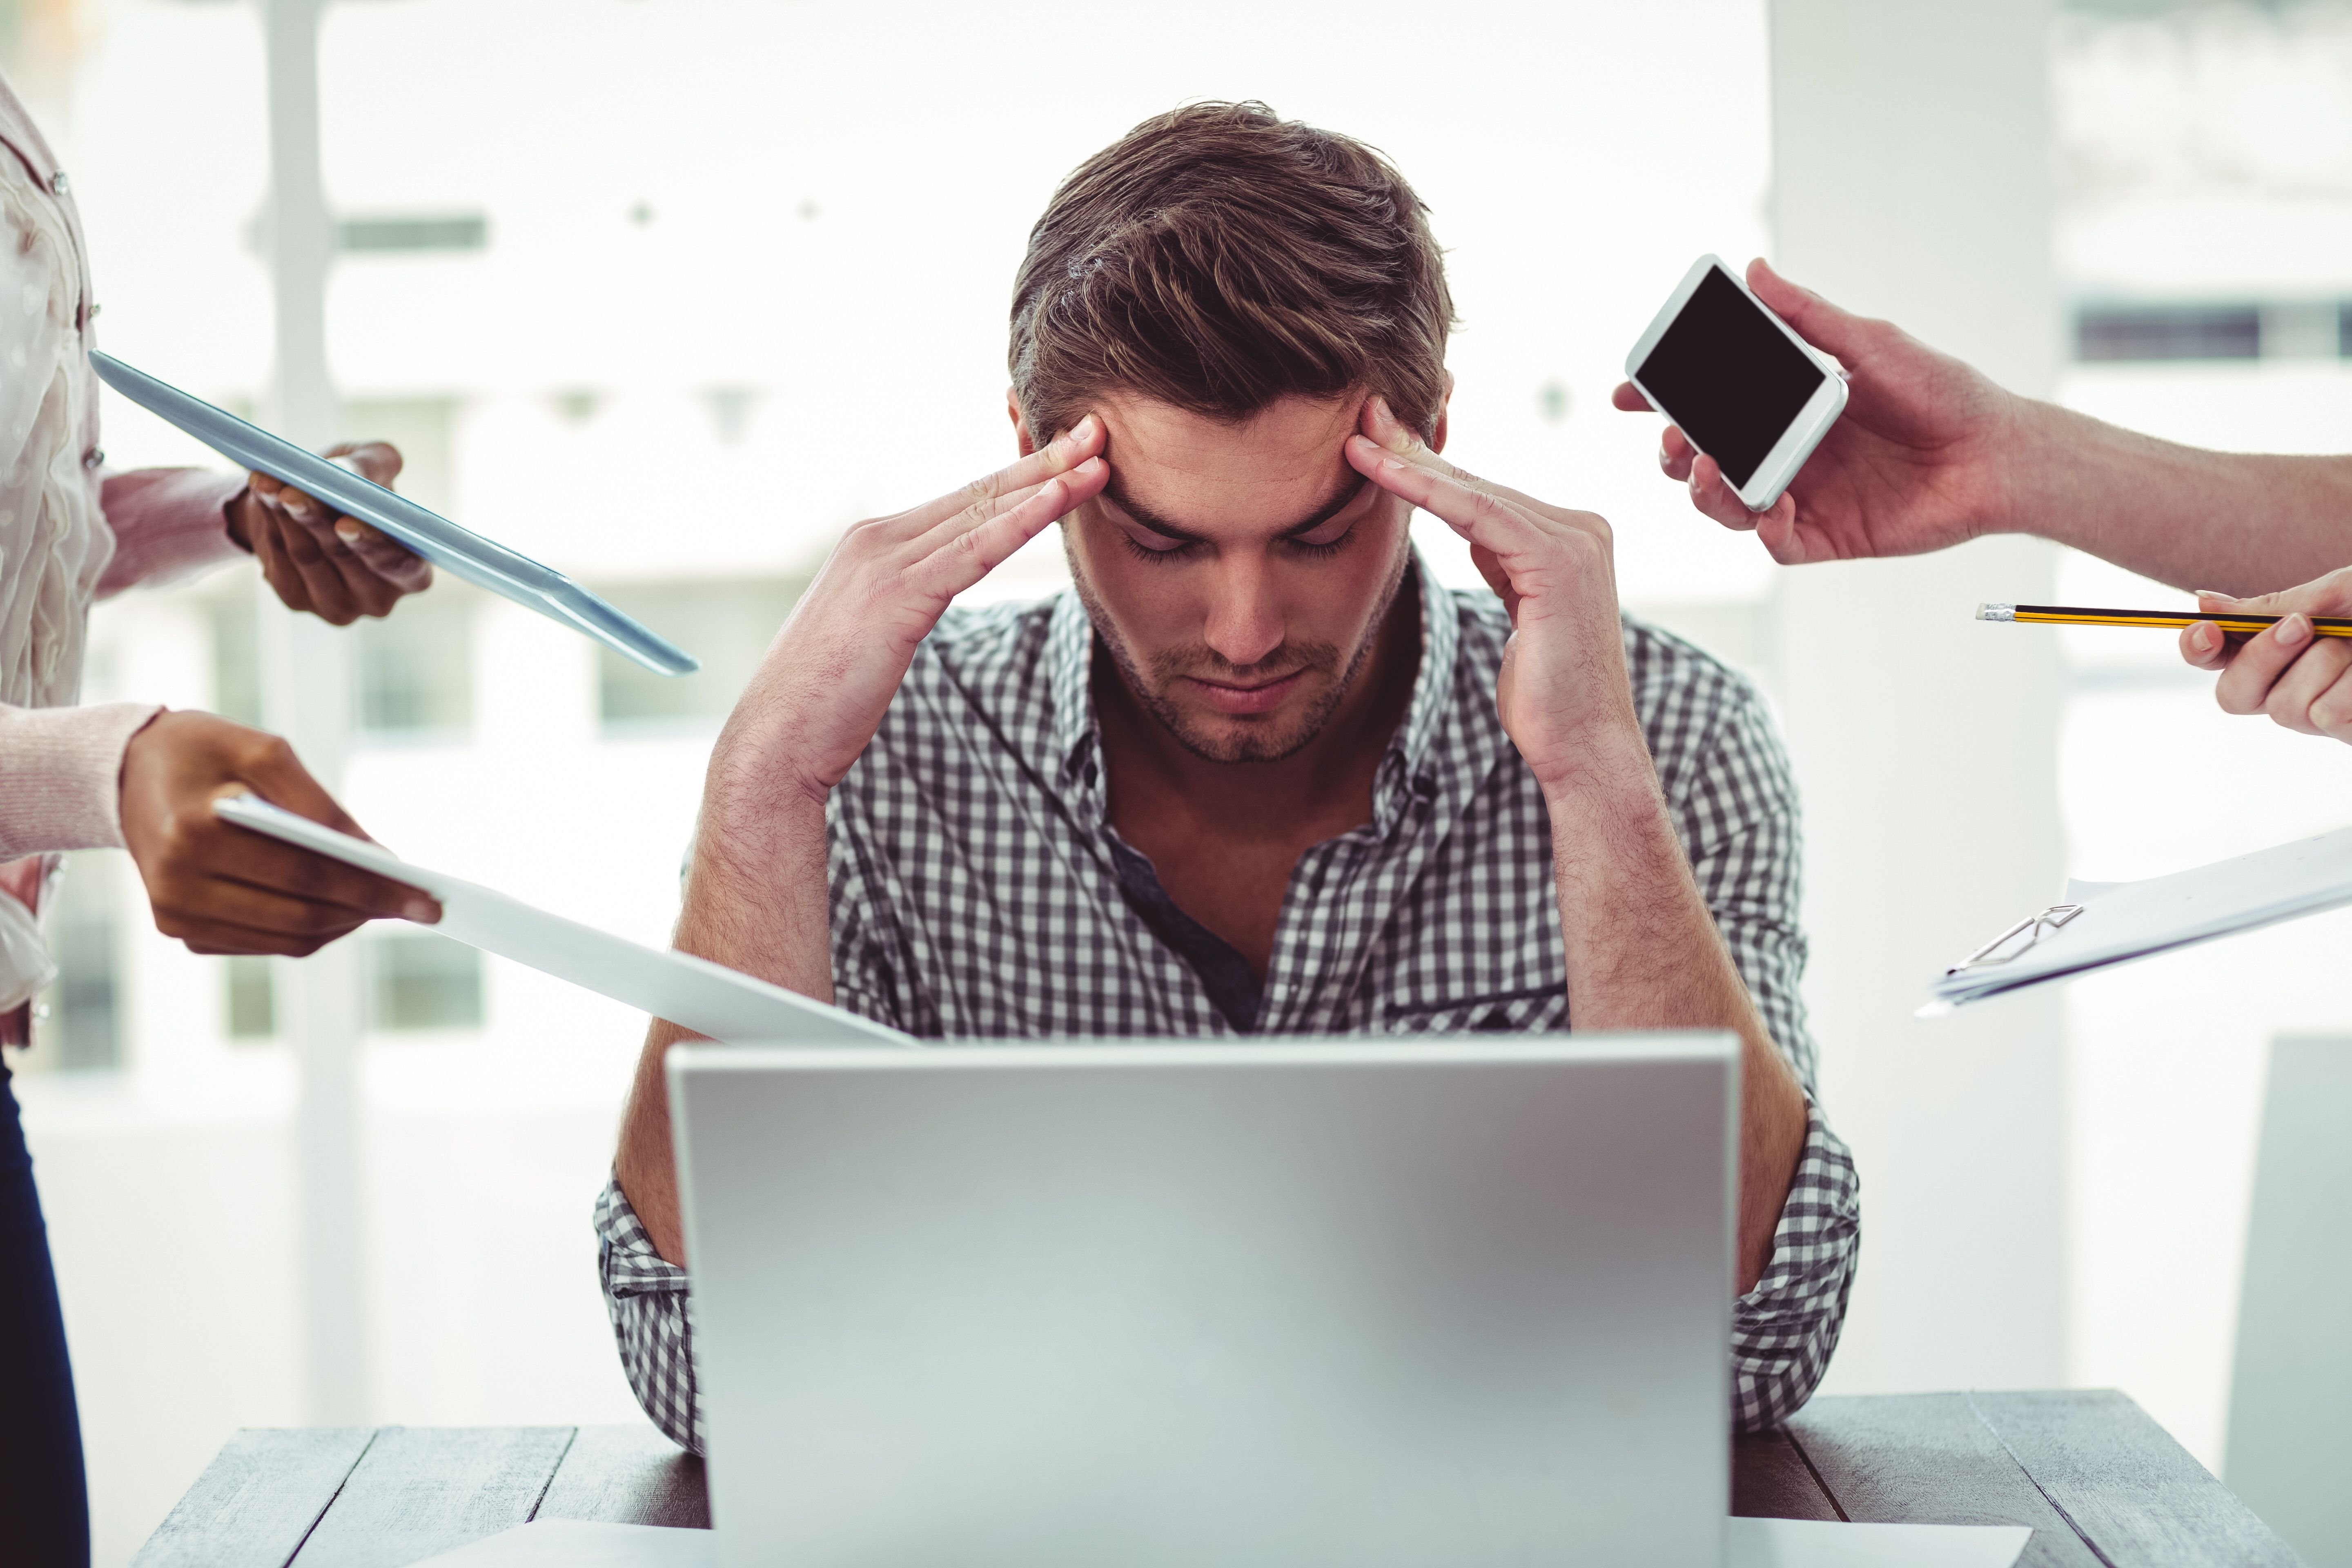 A man looking stressed while working on his laptop. | Source: Shutterstock